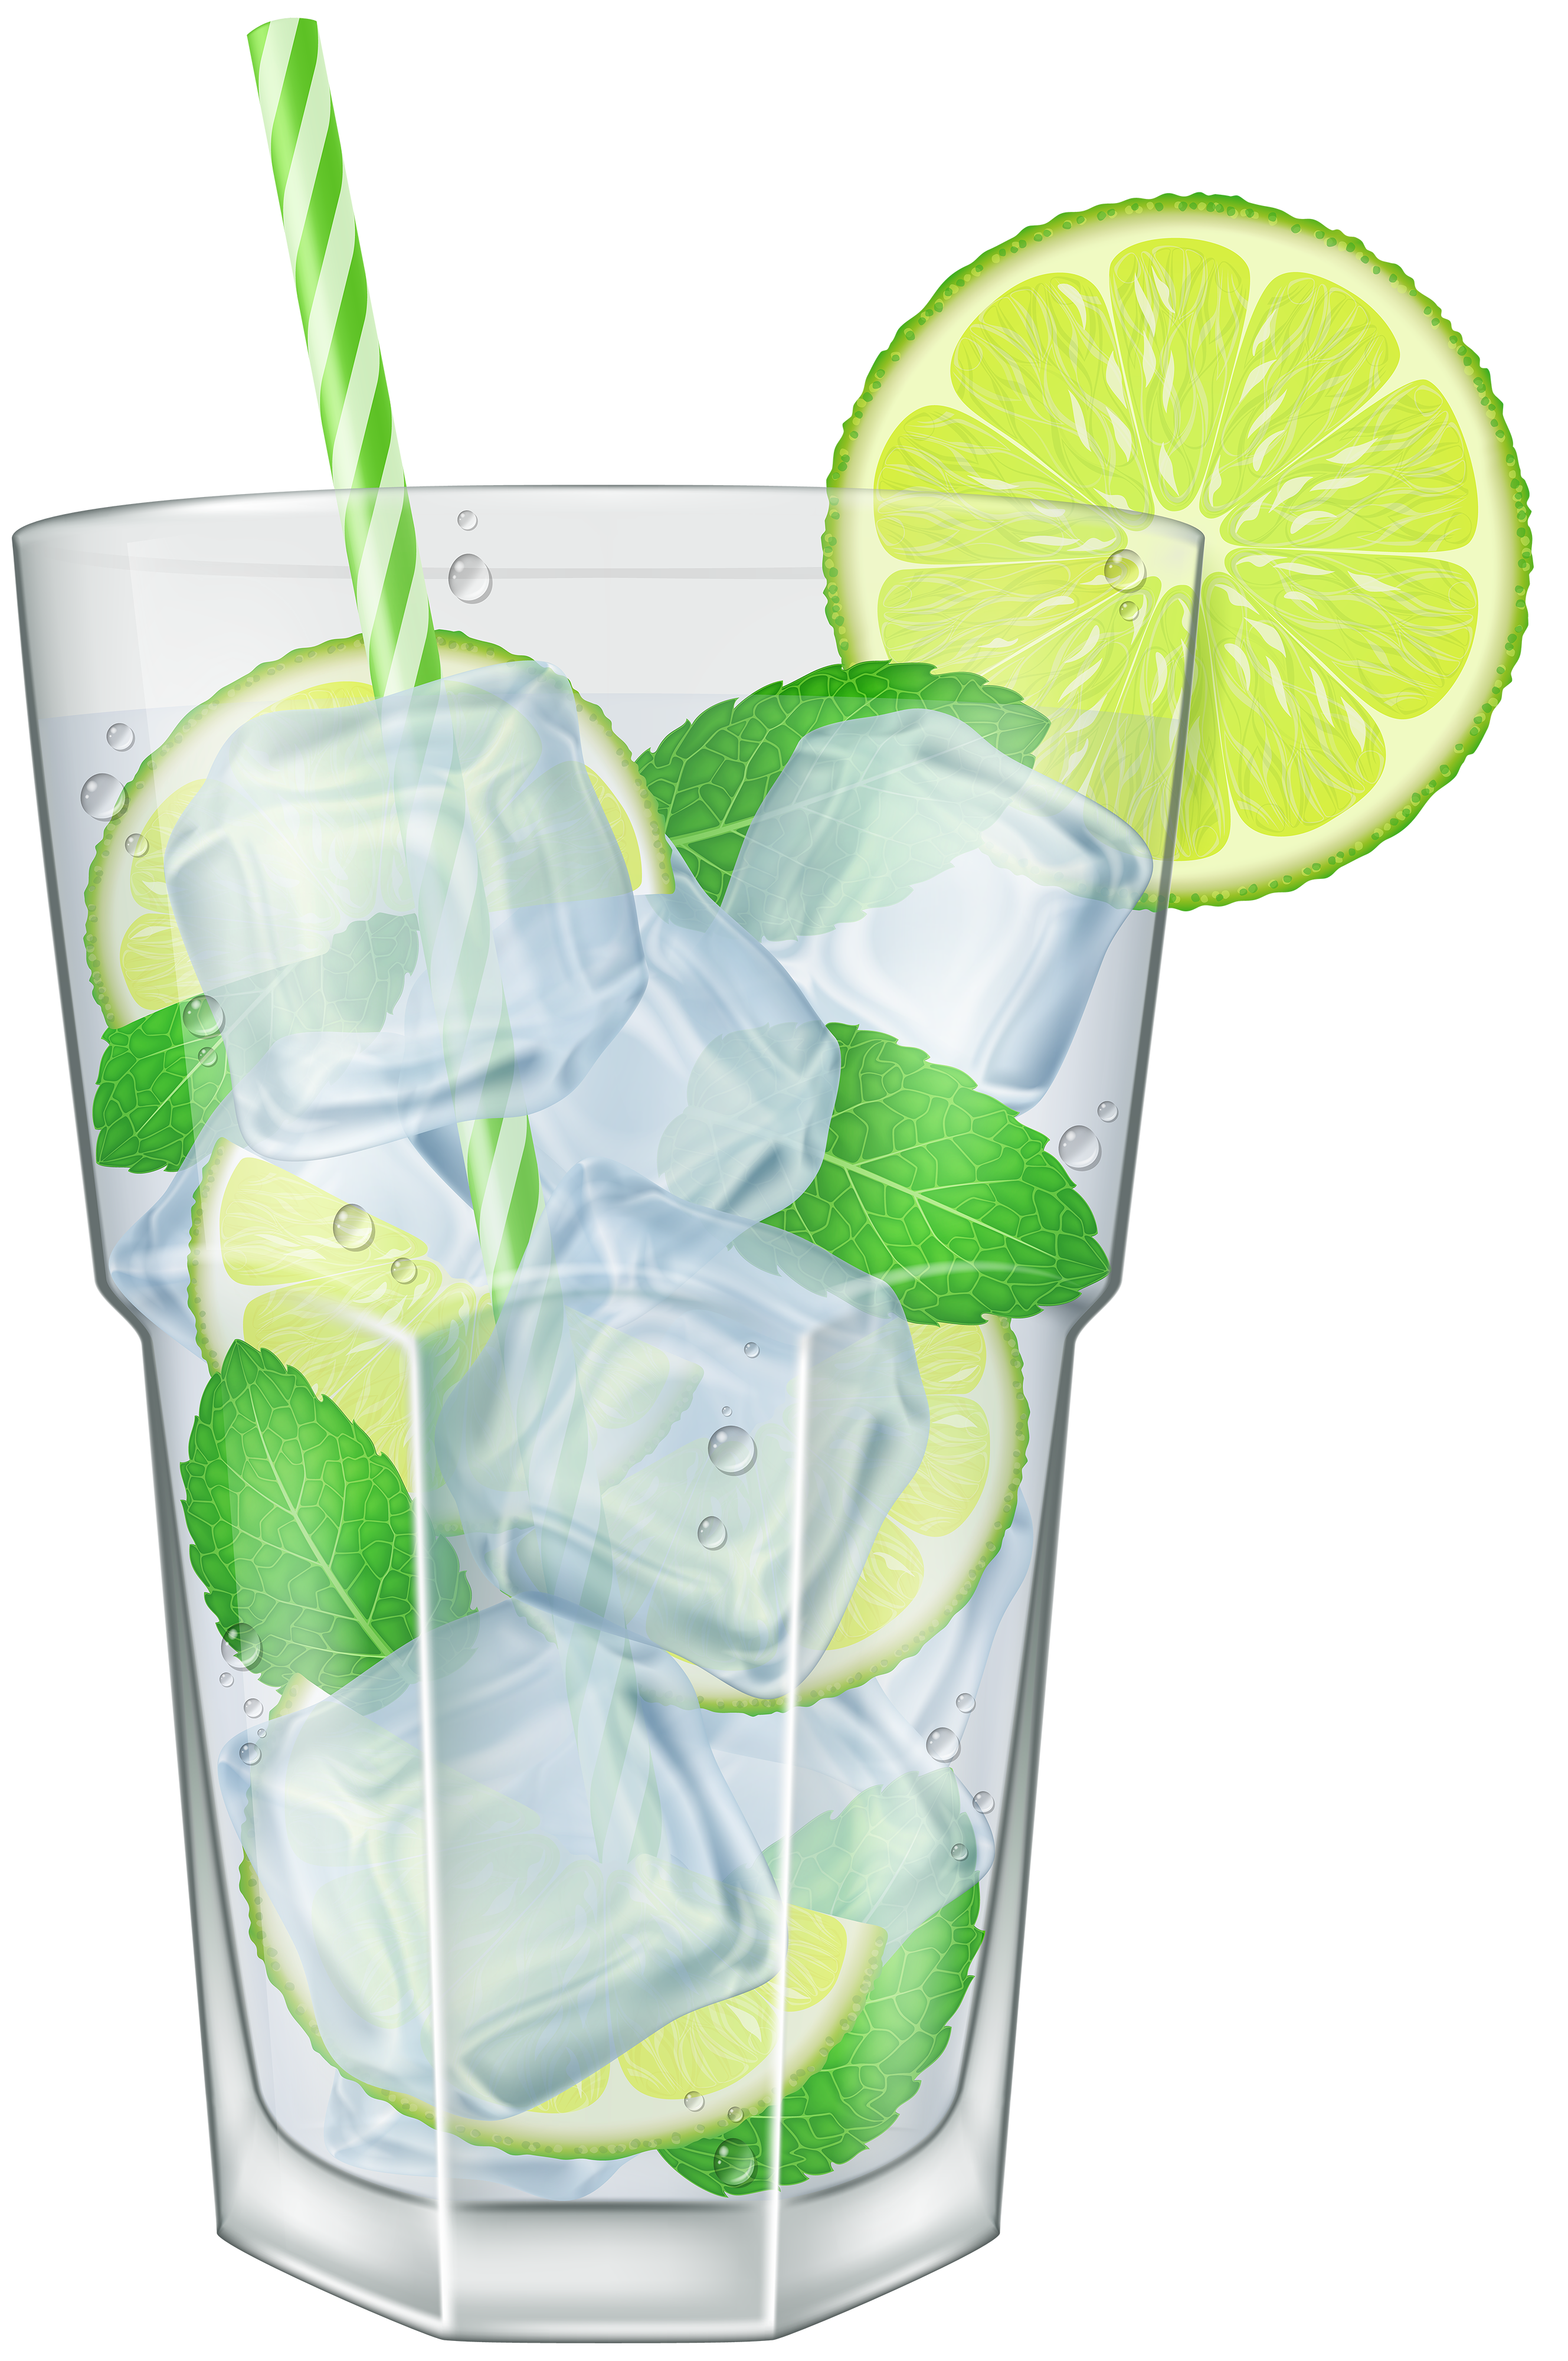 Cocktail clipart mojito. Png clip art image